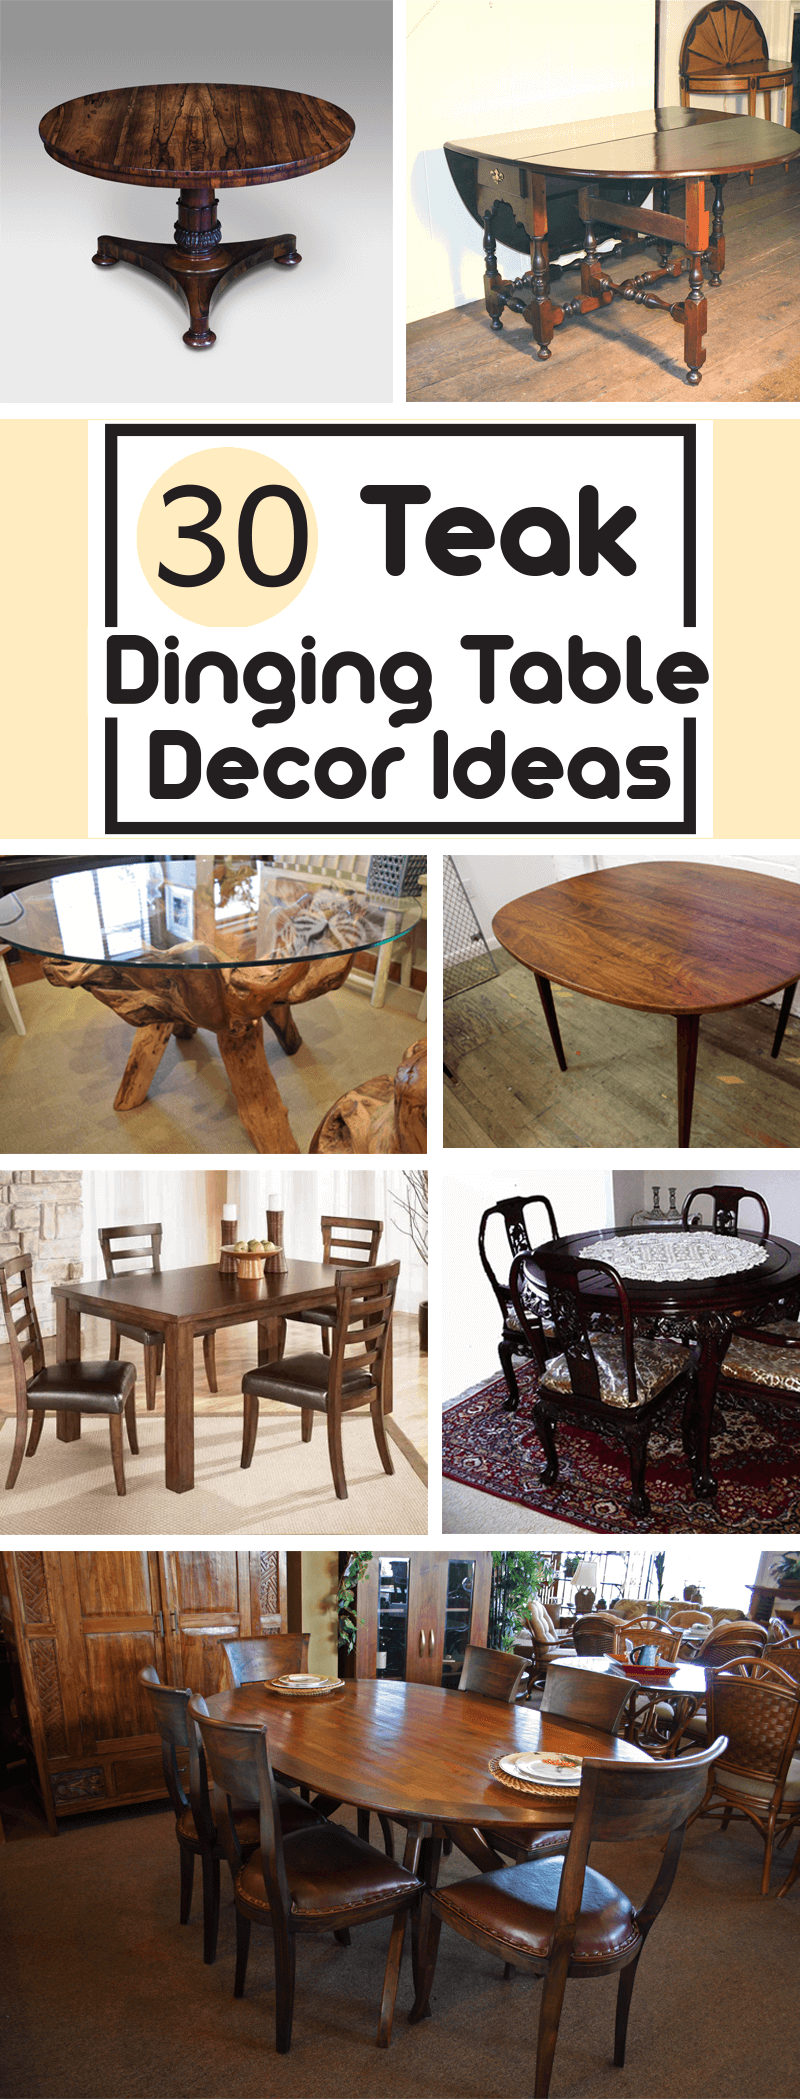 30 Trendy Teak Wood Dining Table Ideas To Impress Your Guests